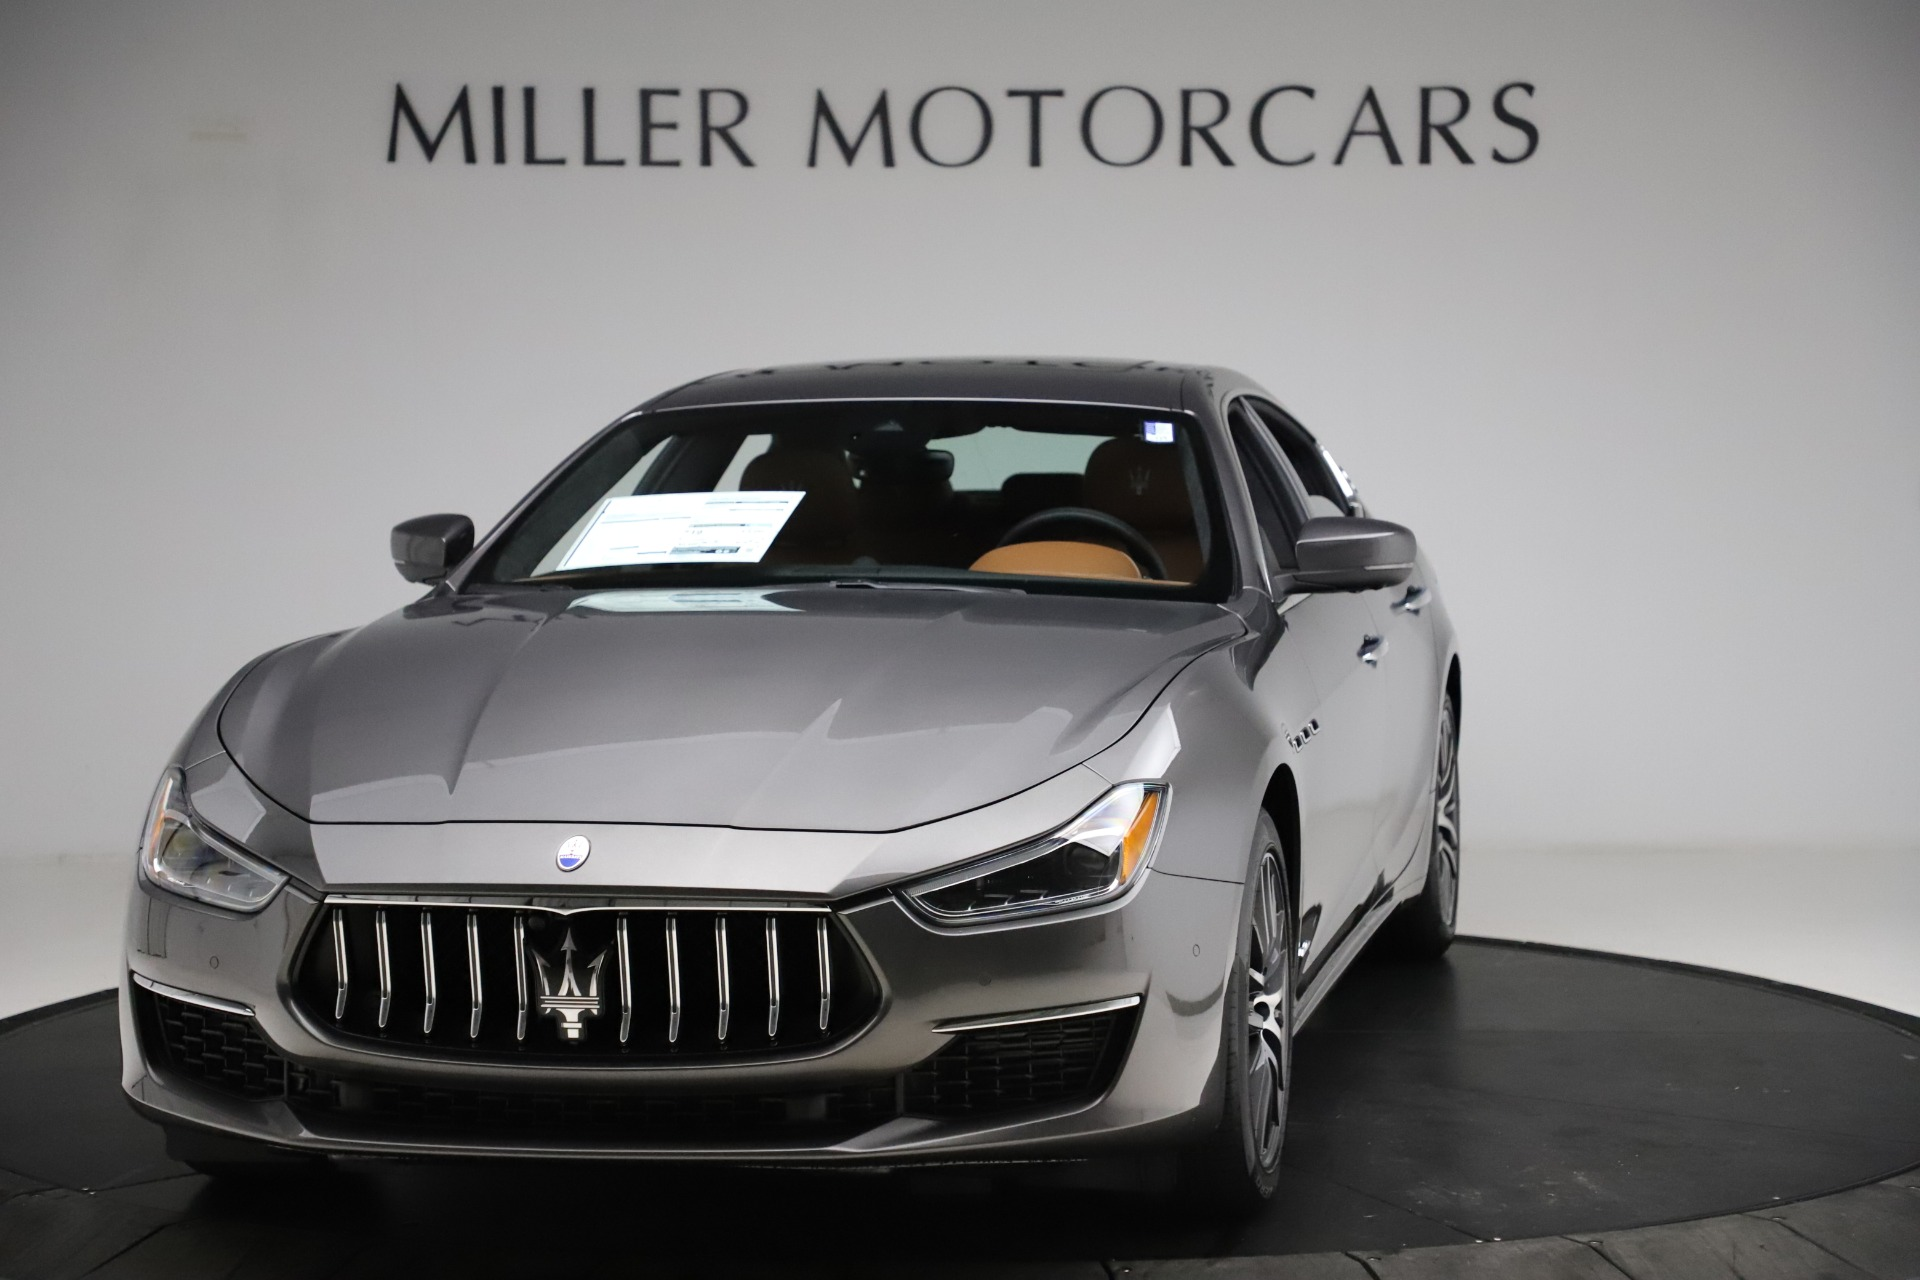 New 2021 Maserati Ghibli S Q4 GranLusso for sale Sold at Alfa Romeo of Westport in Westport CT 06880 1